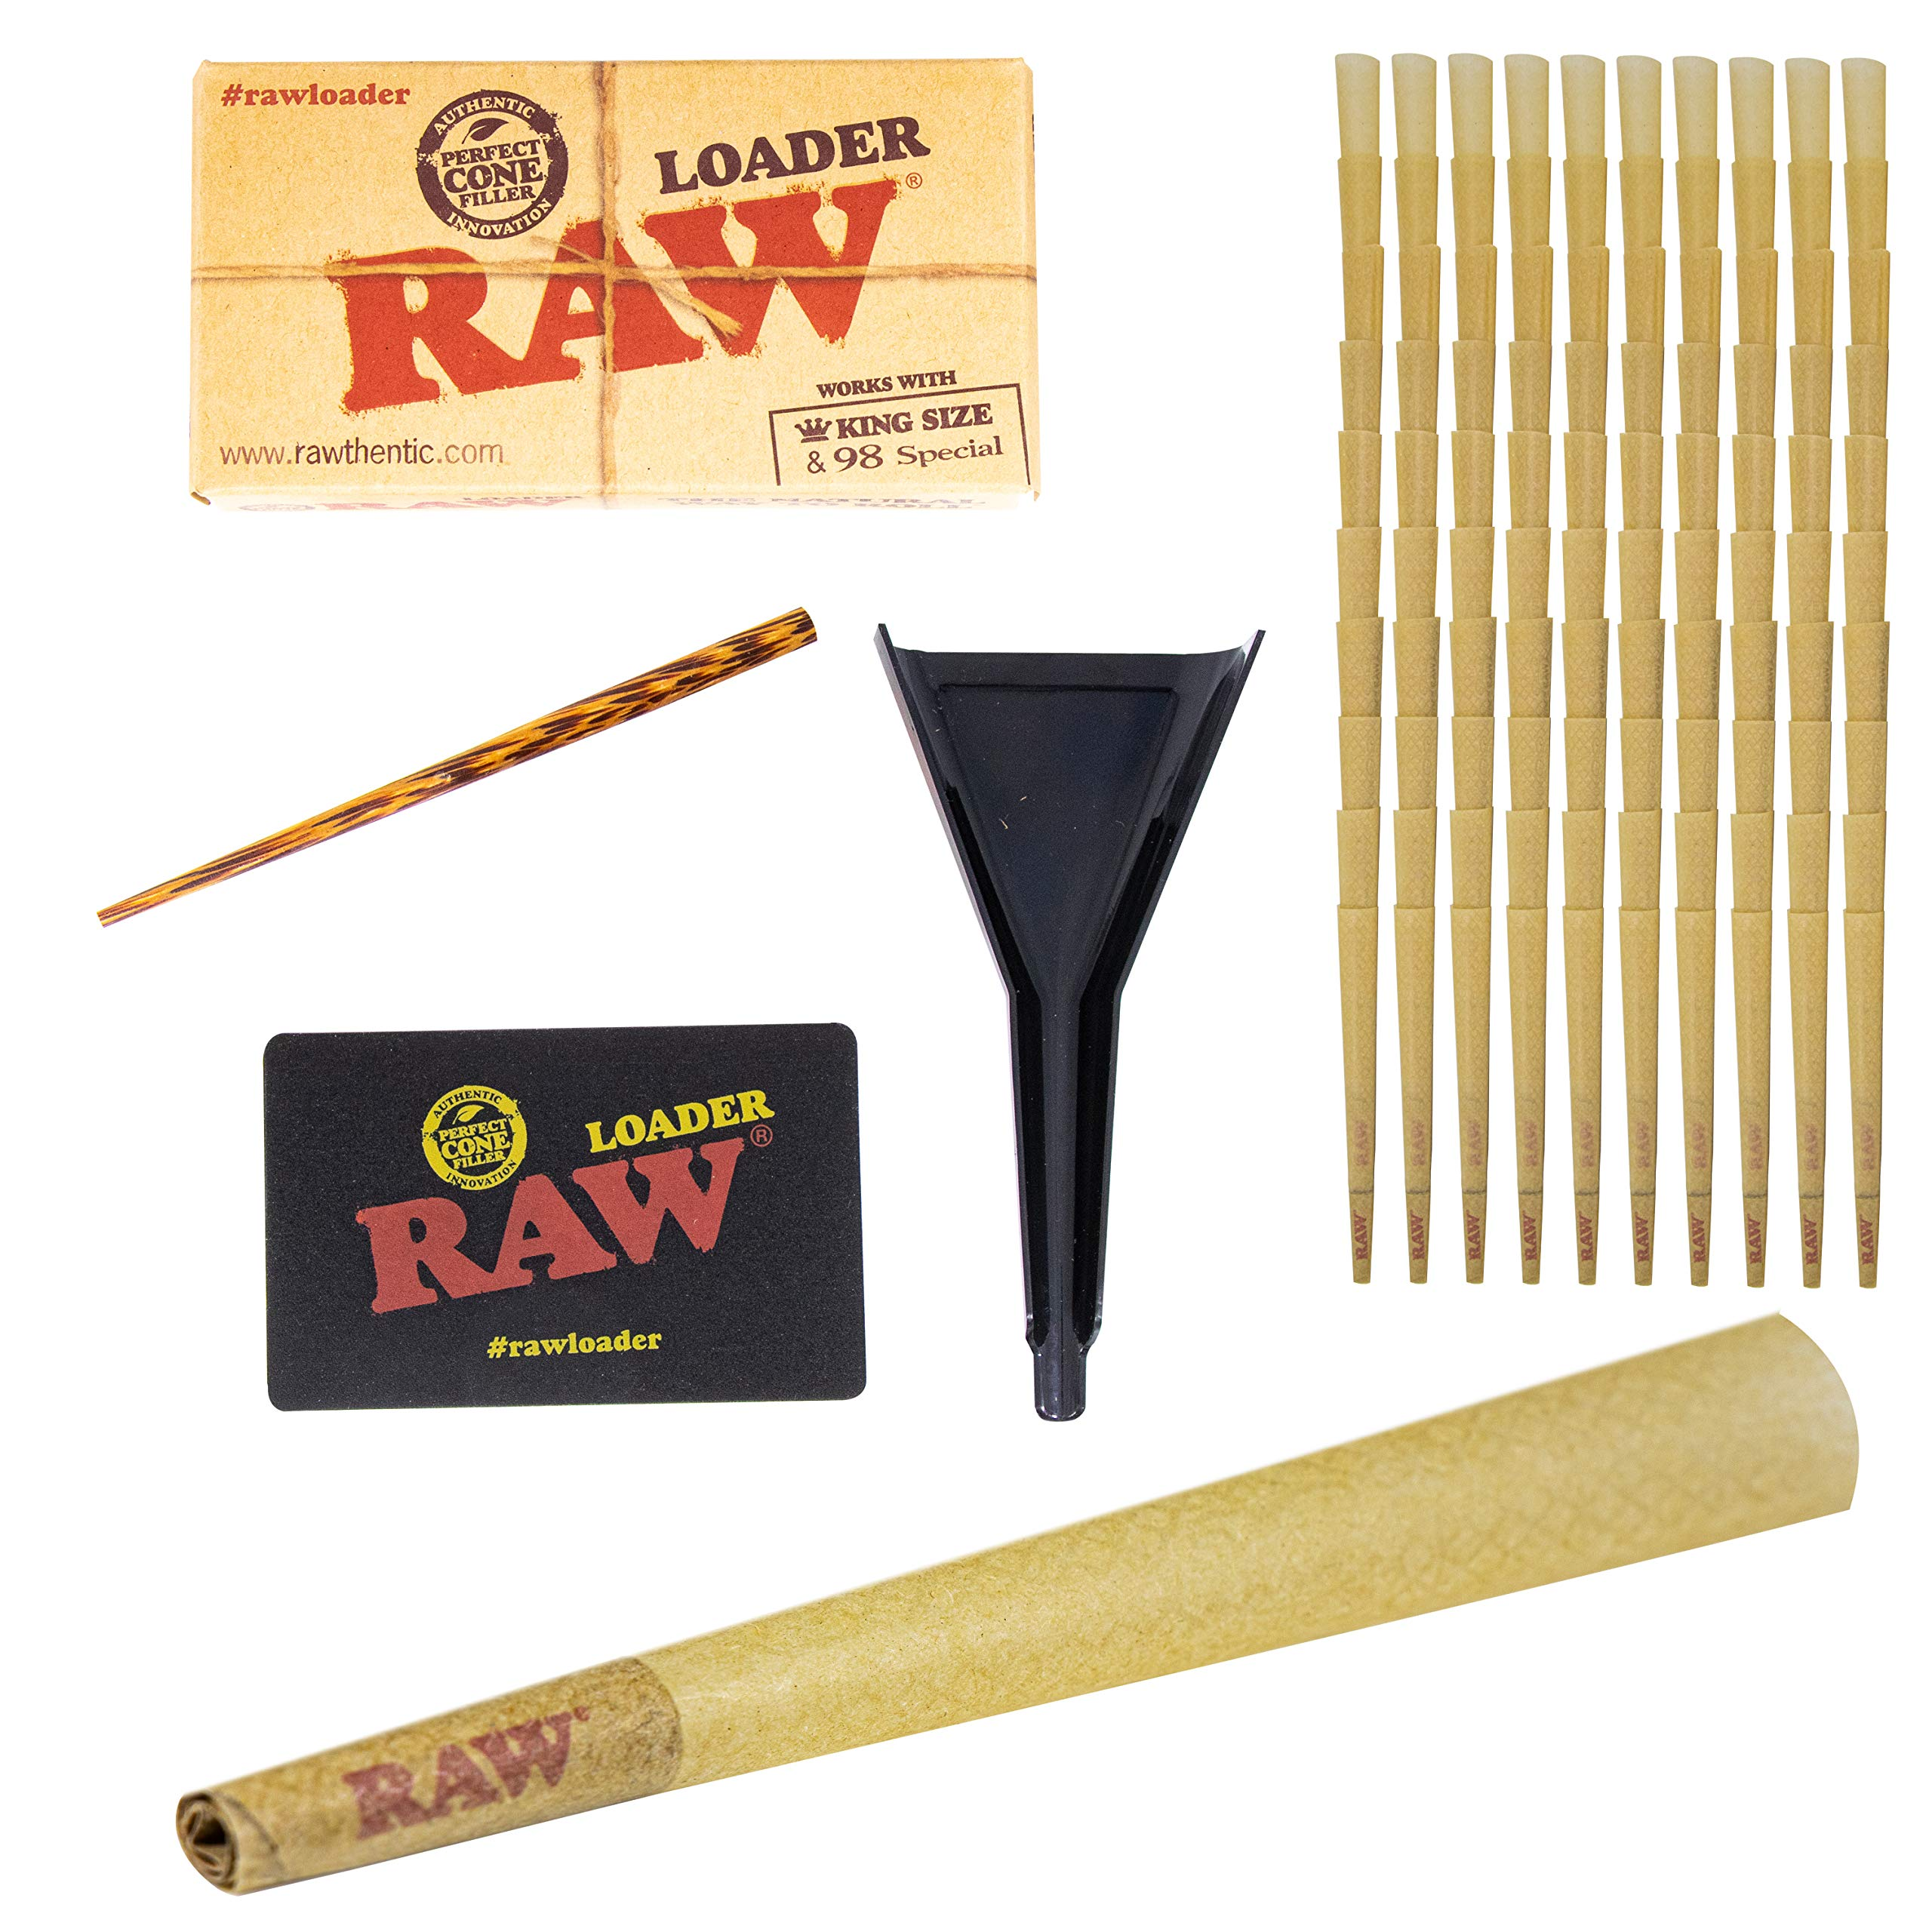 100 RAW Cones Classic King Size, with RAW Cone Loader, Pre-Rolled RAW Rolling Papers with Tips